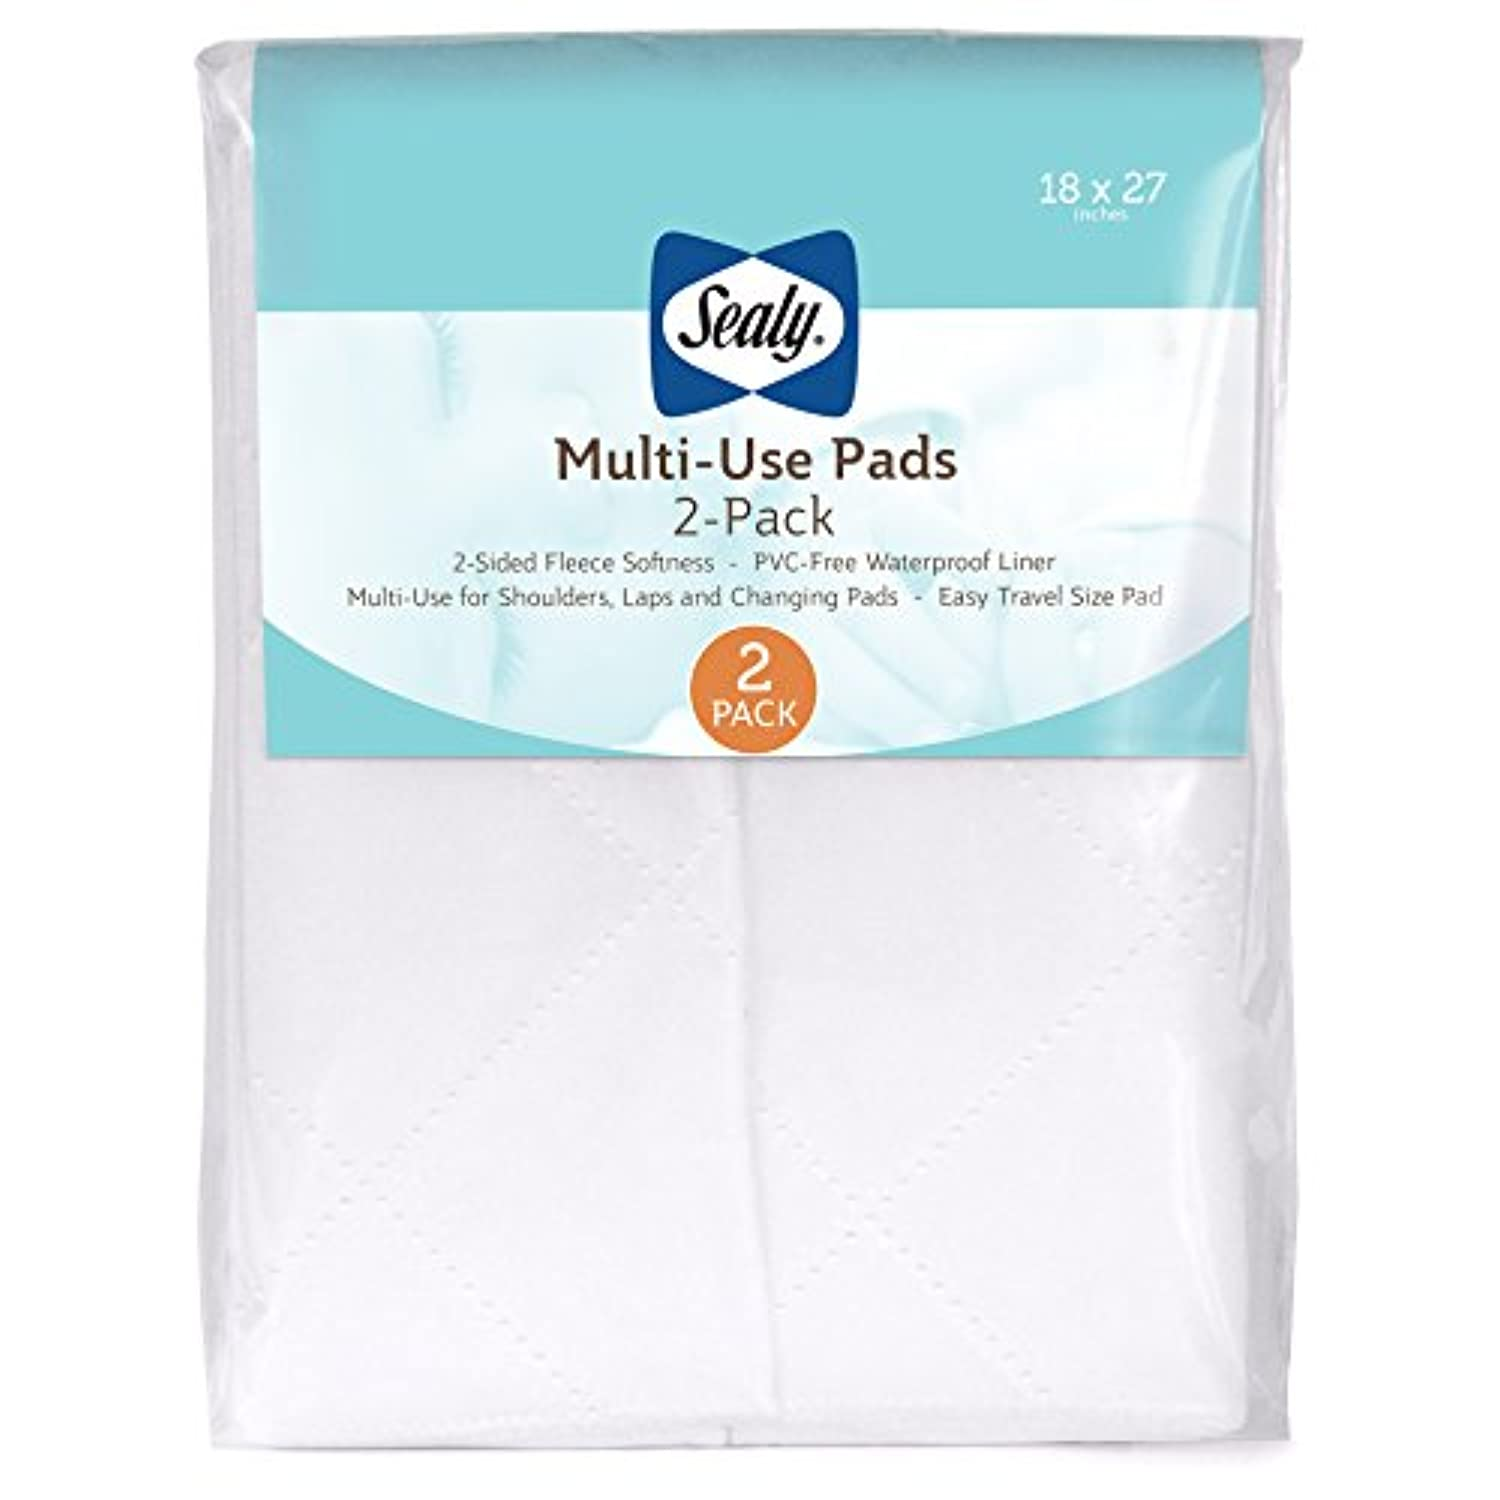 Sealy Multi-Use 2-Piece Quilted Fleece Pads by Sealy